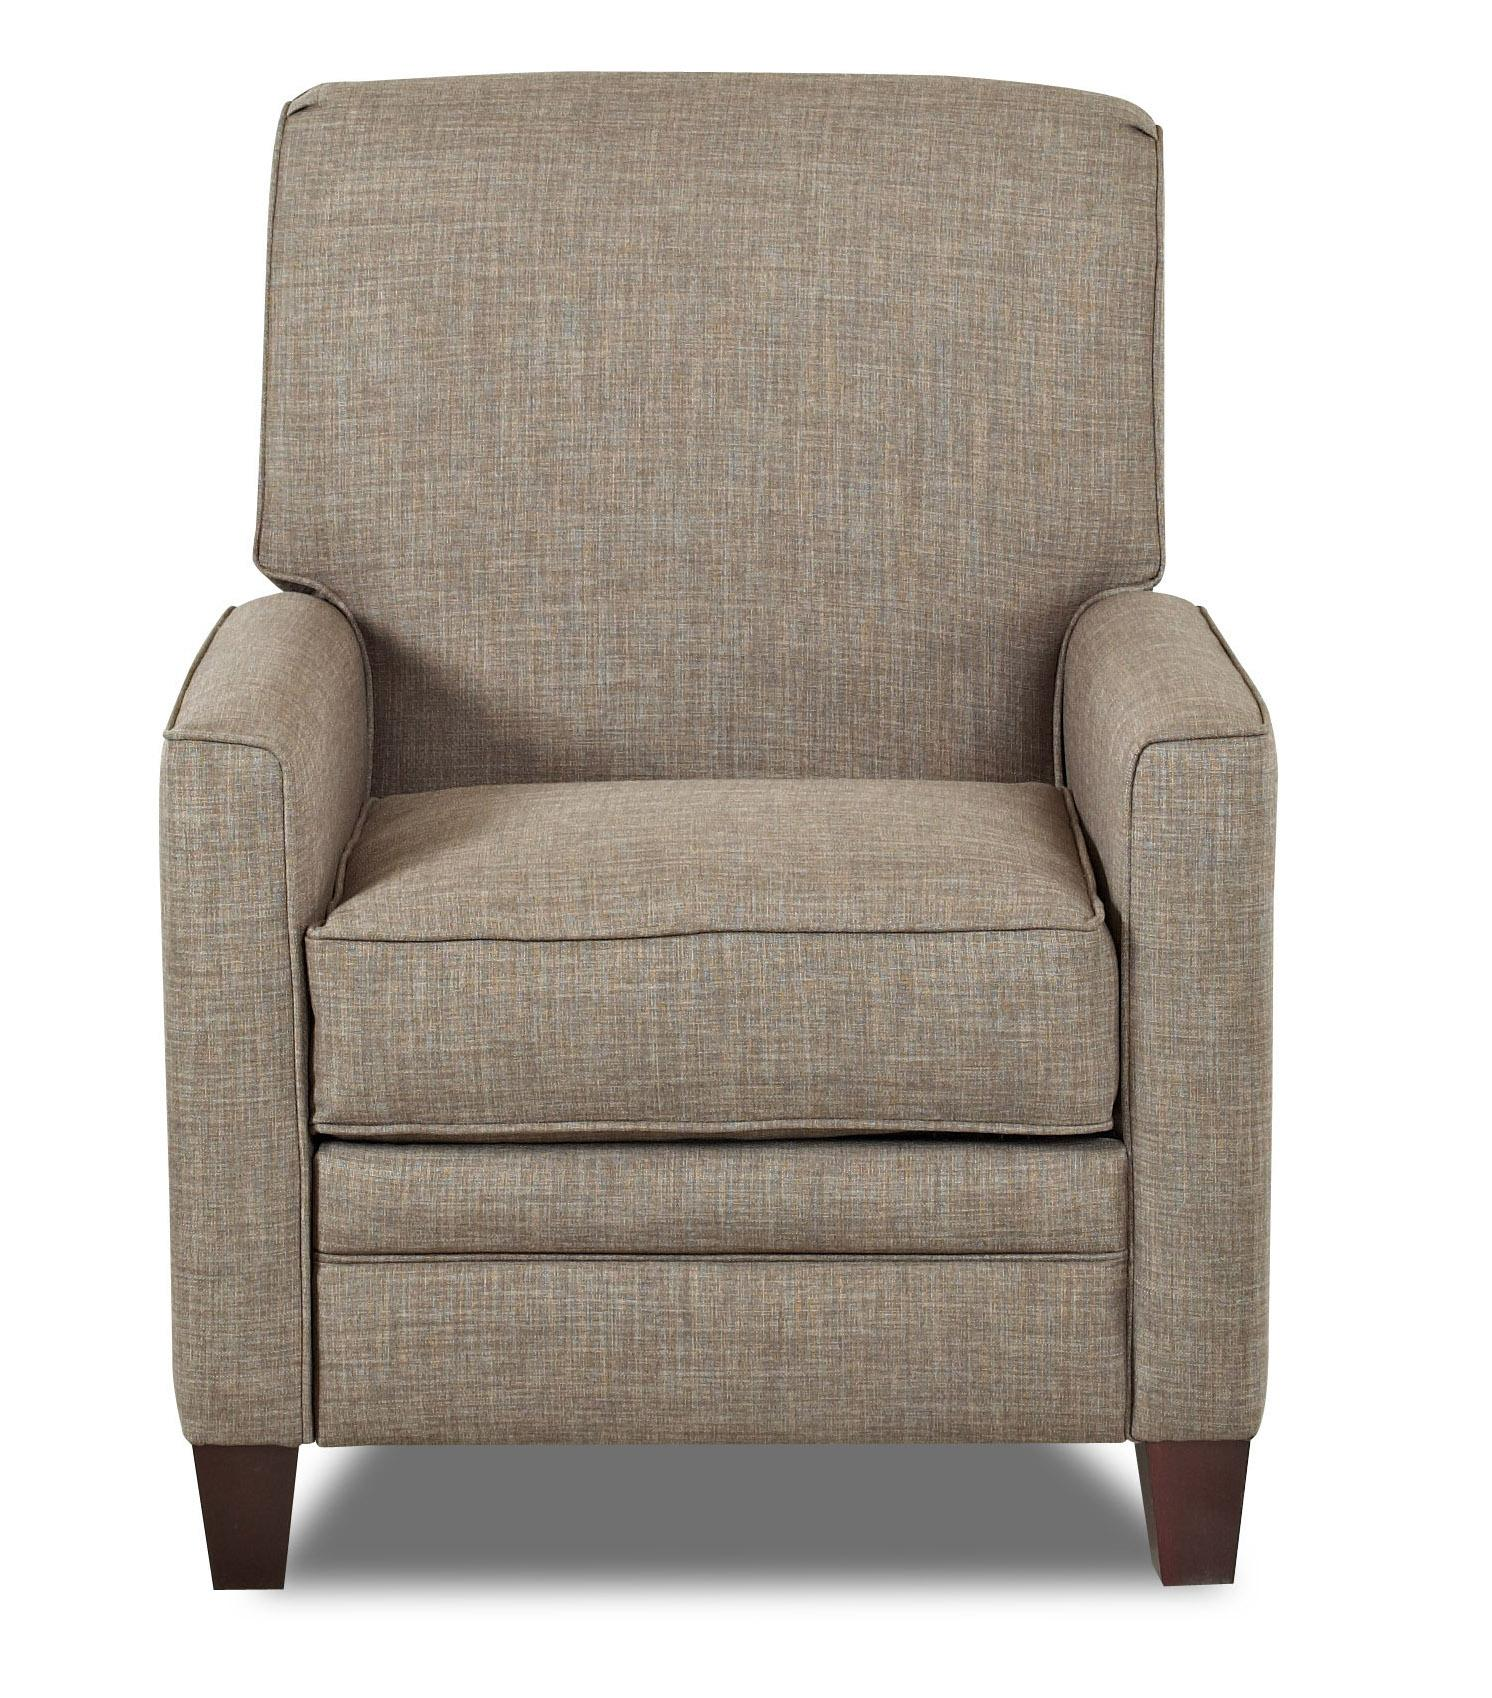 Pantego Power High Leg Reclining Chair by Klaussner at Pilgrim Furniture City